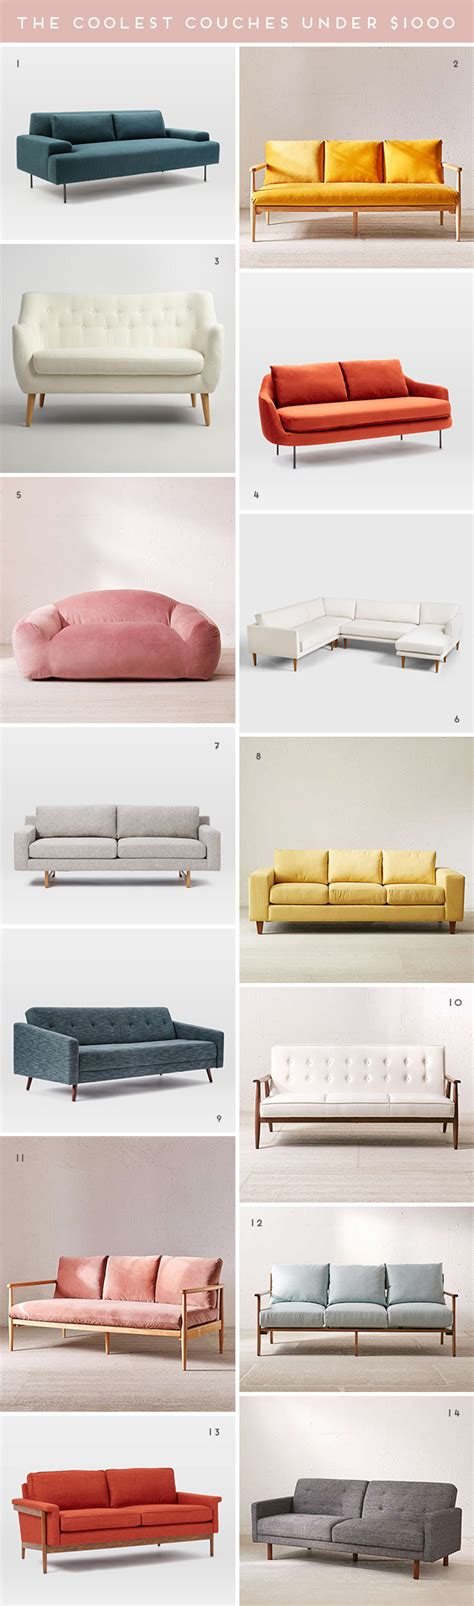 coolest sofa potato the coolest couches 1 000 paper and